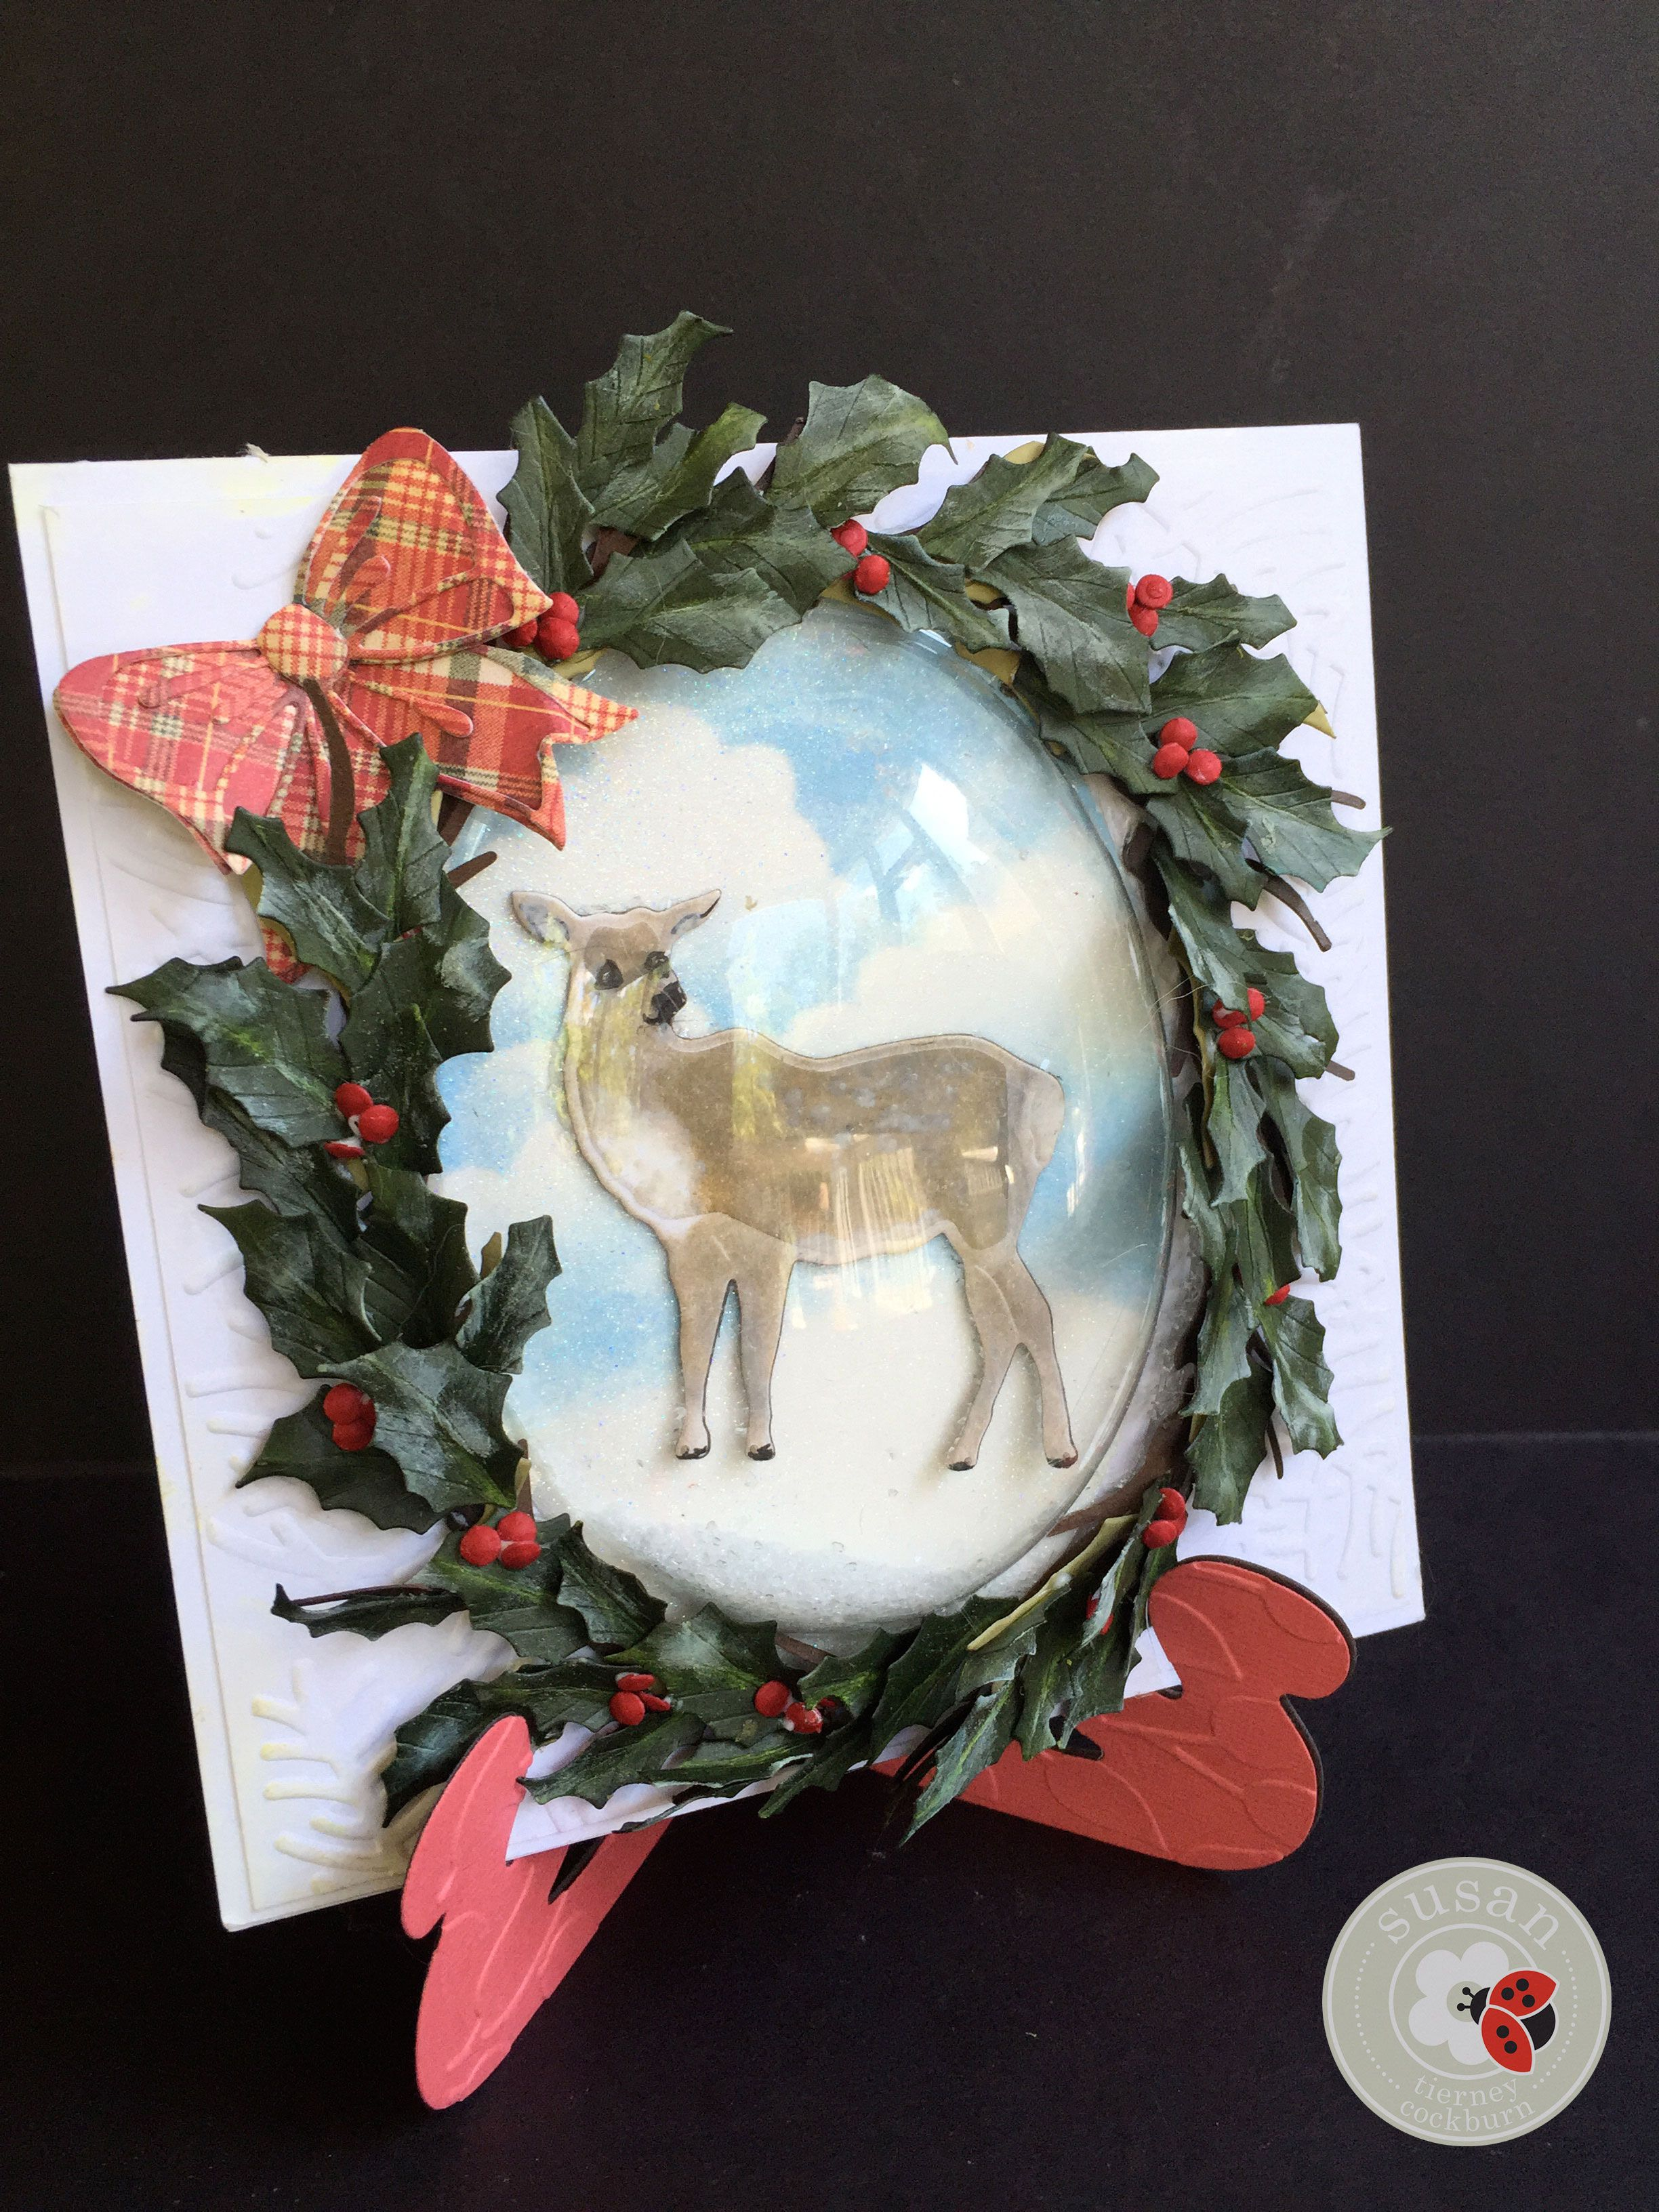 A Beautiful Holiday Wreath Created By Susan Tierney Cockburn Of Susans